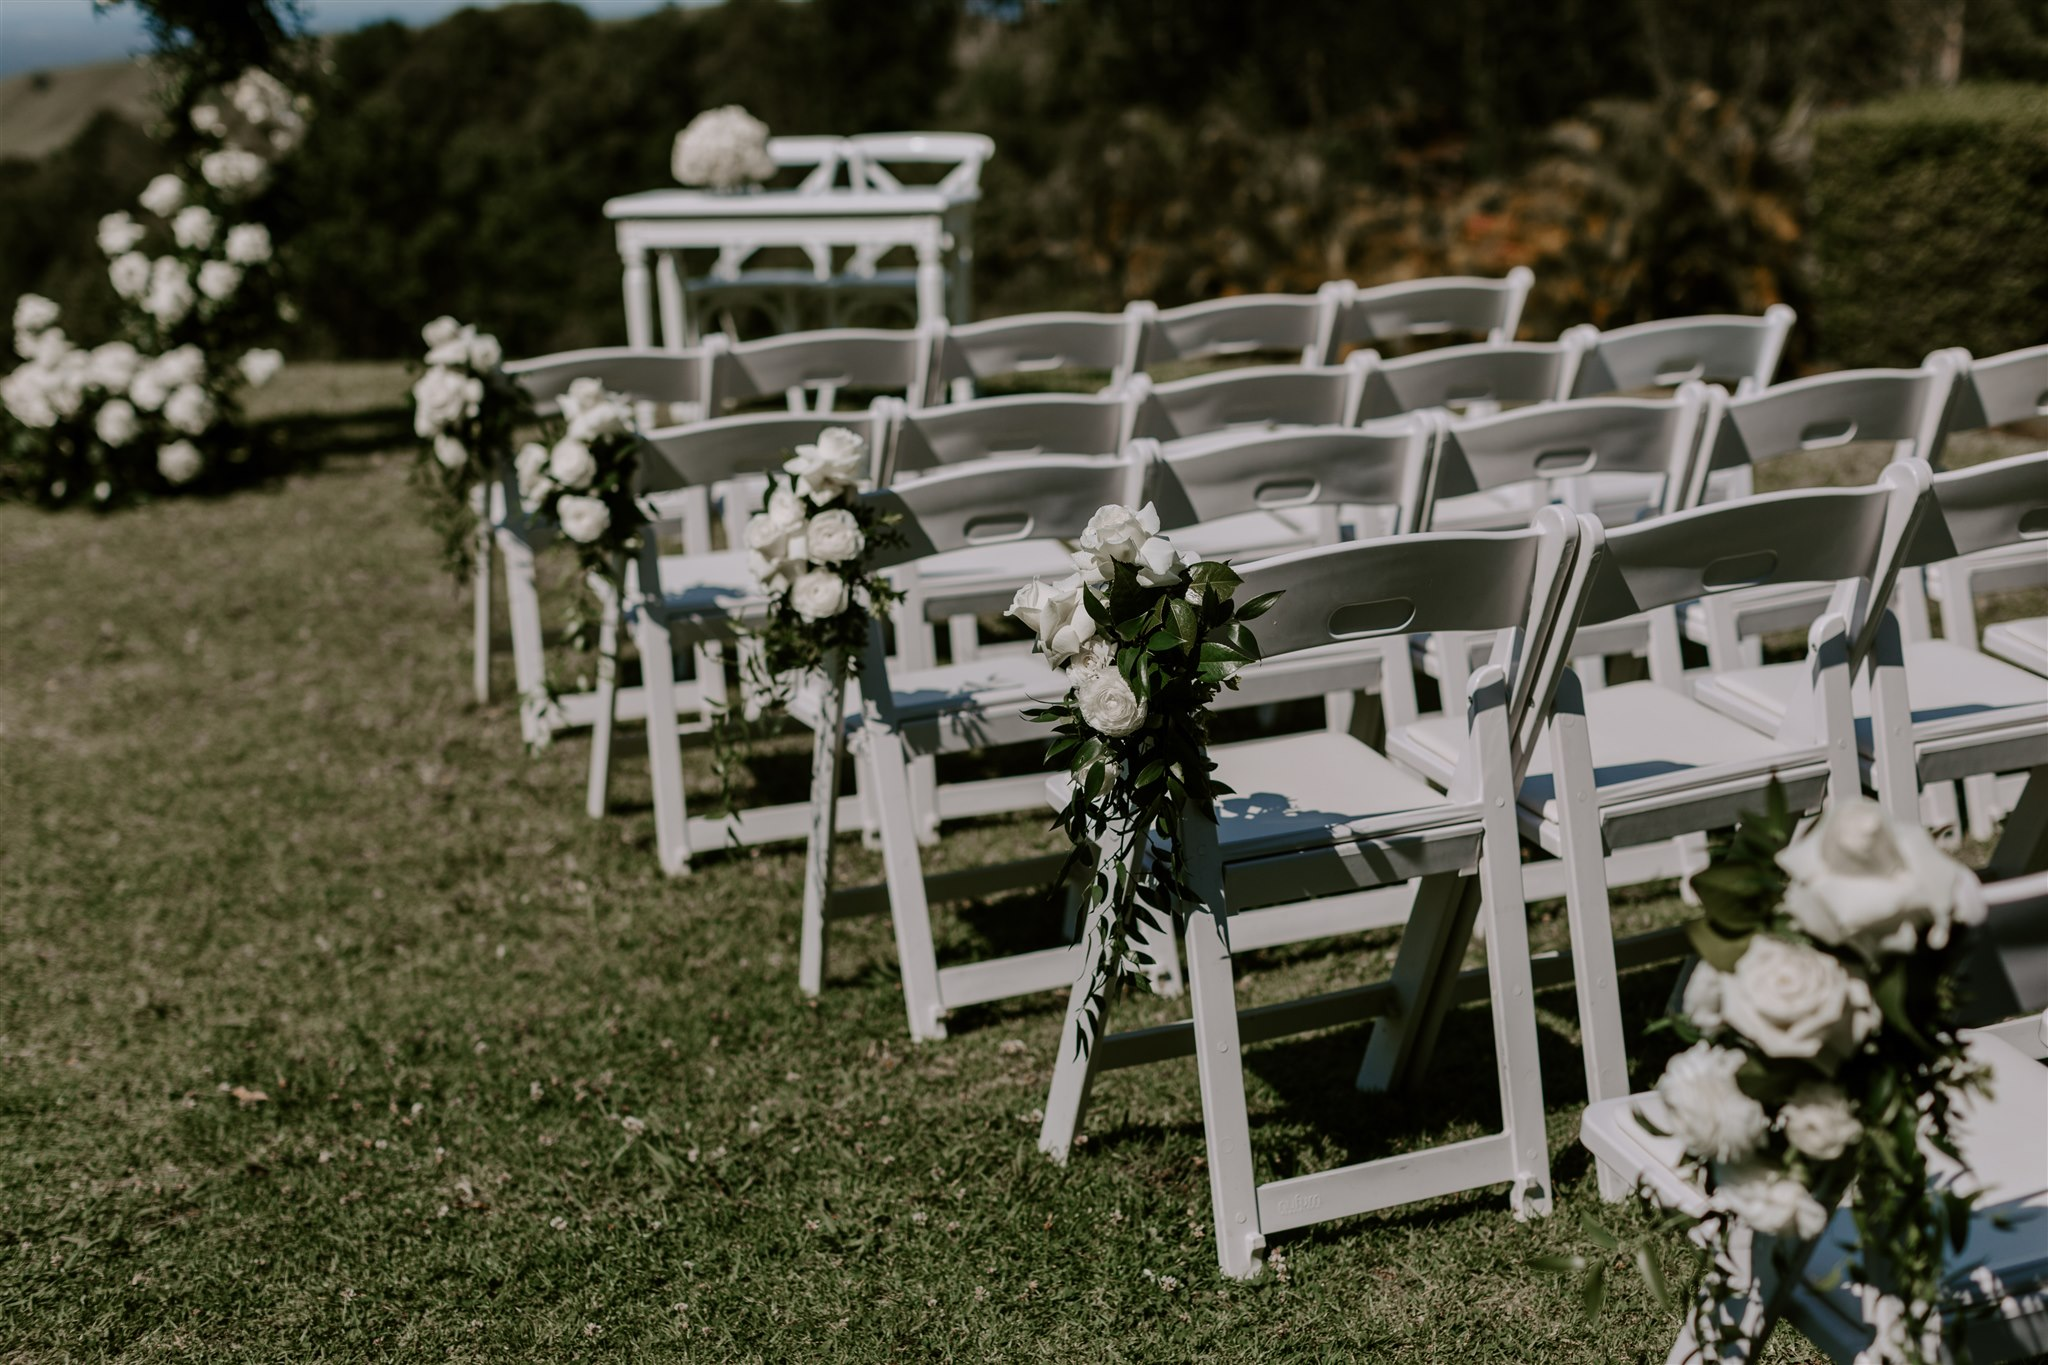 Ceremony chair garlands with white blooms